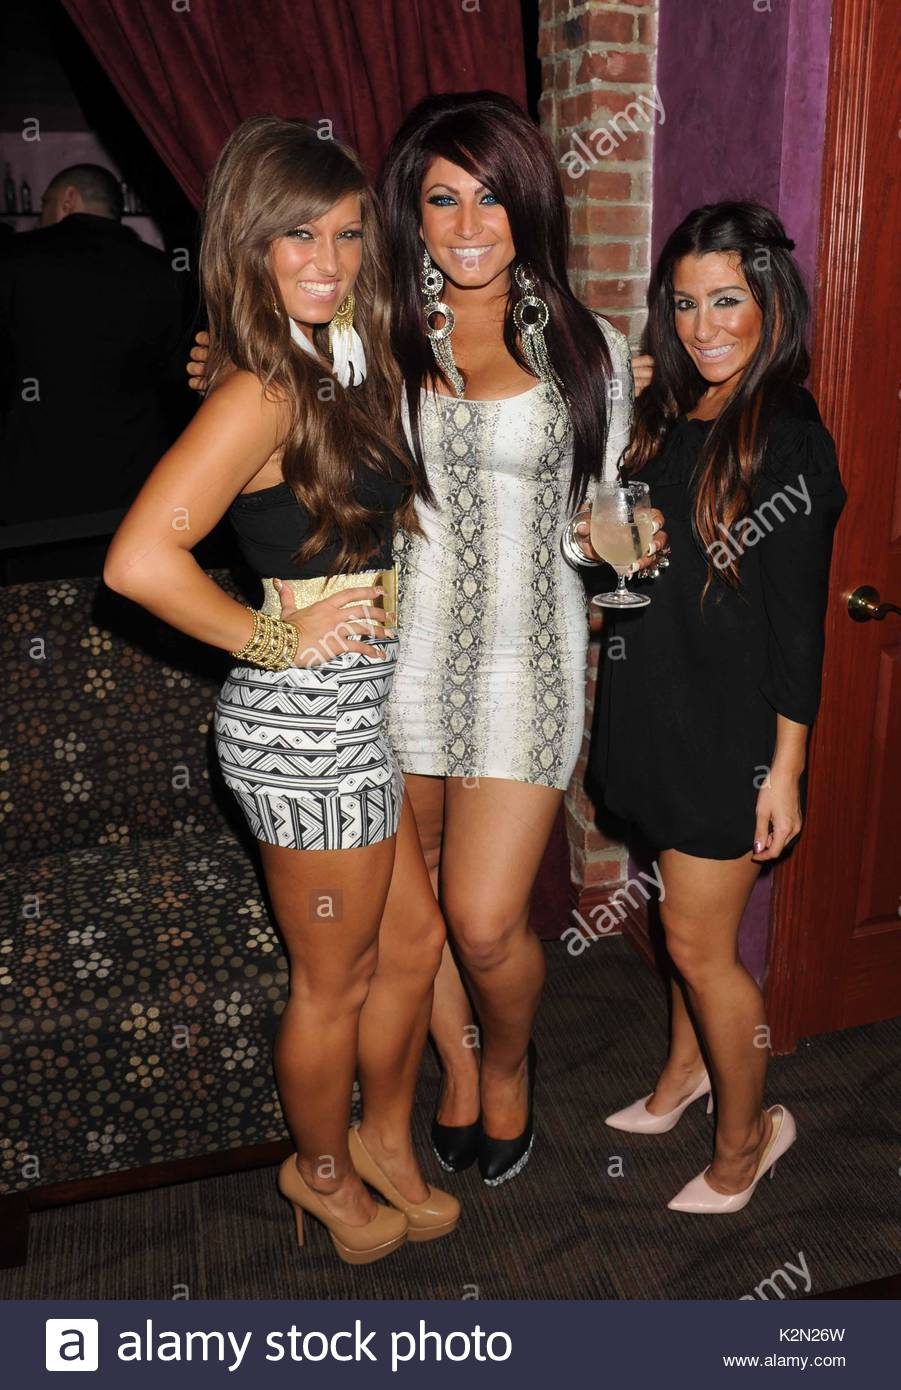 Feet 2019 Tracy Dimarco naked photo 2017